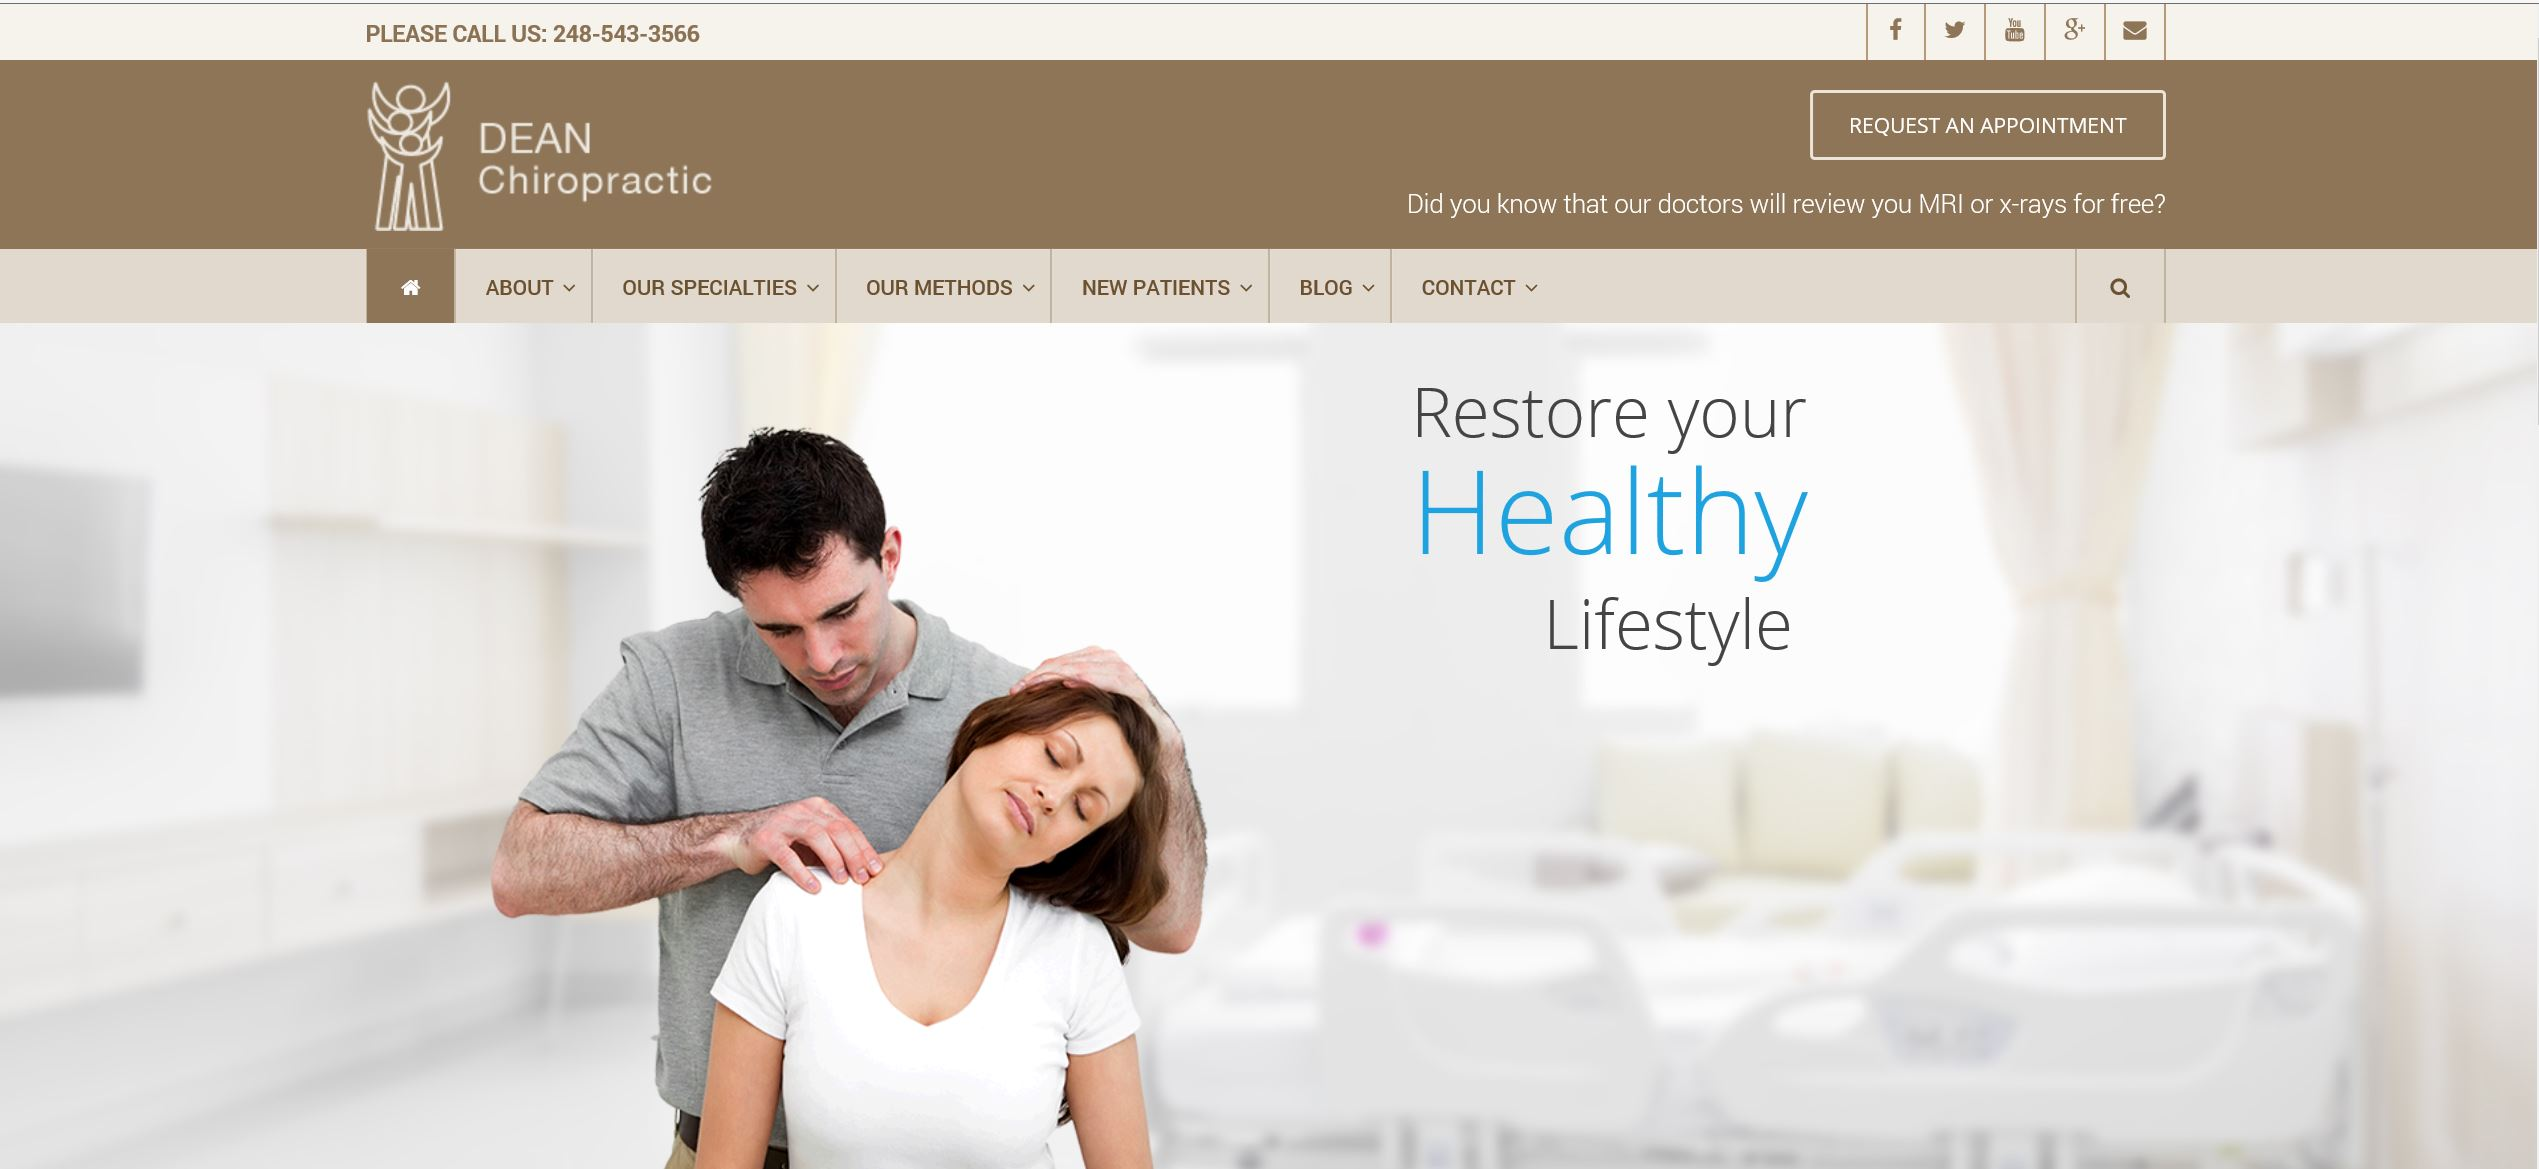 Dean Chiropractic Website